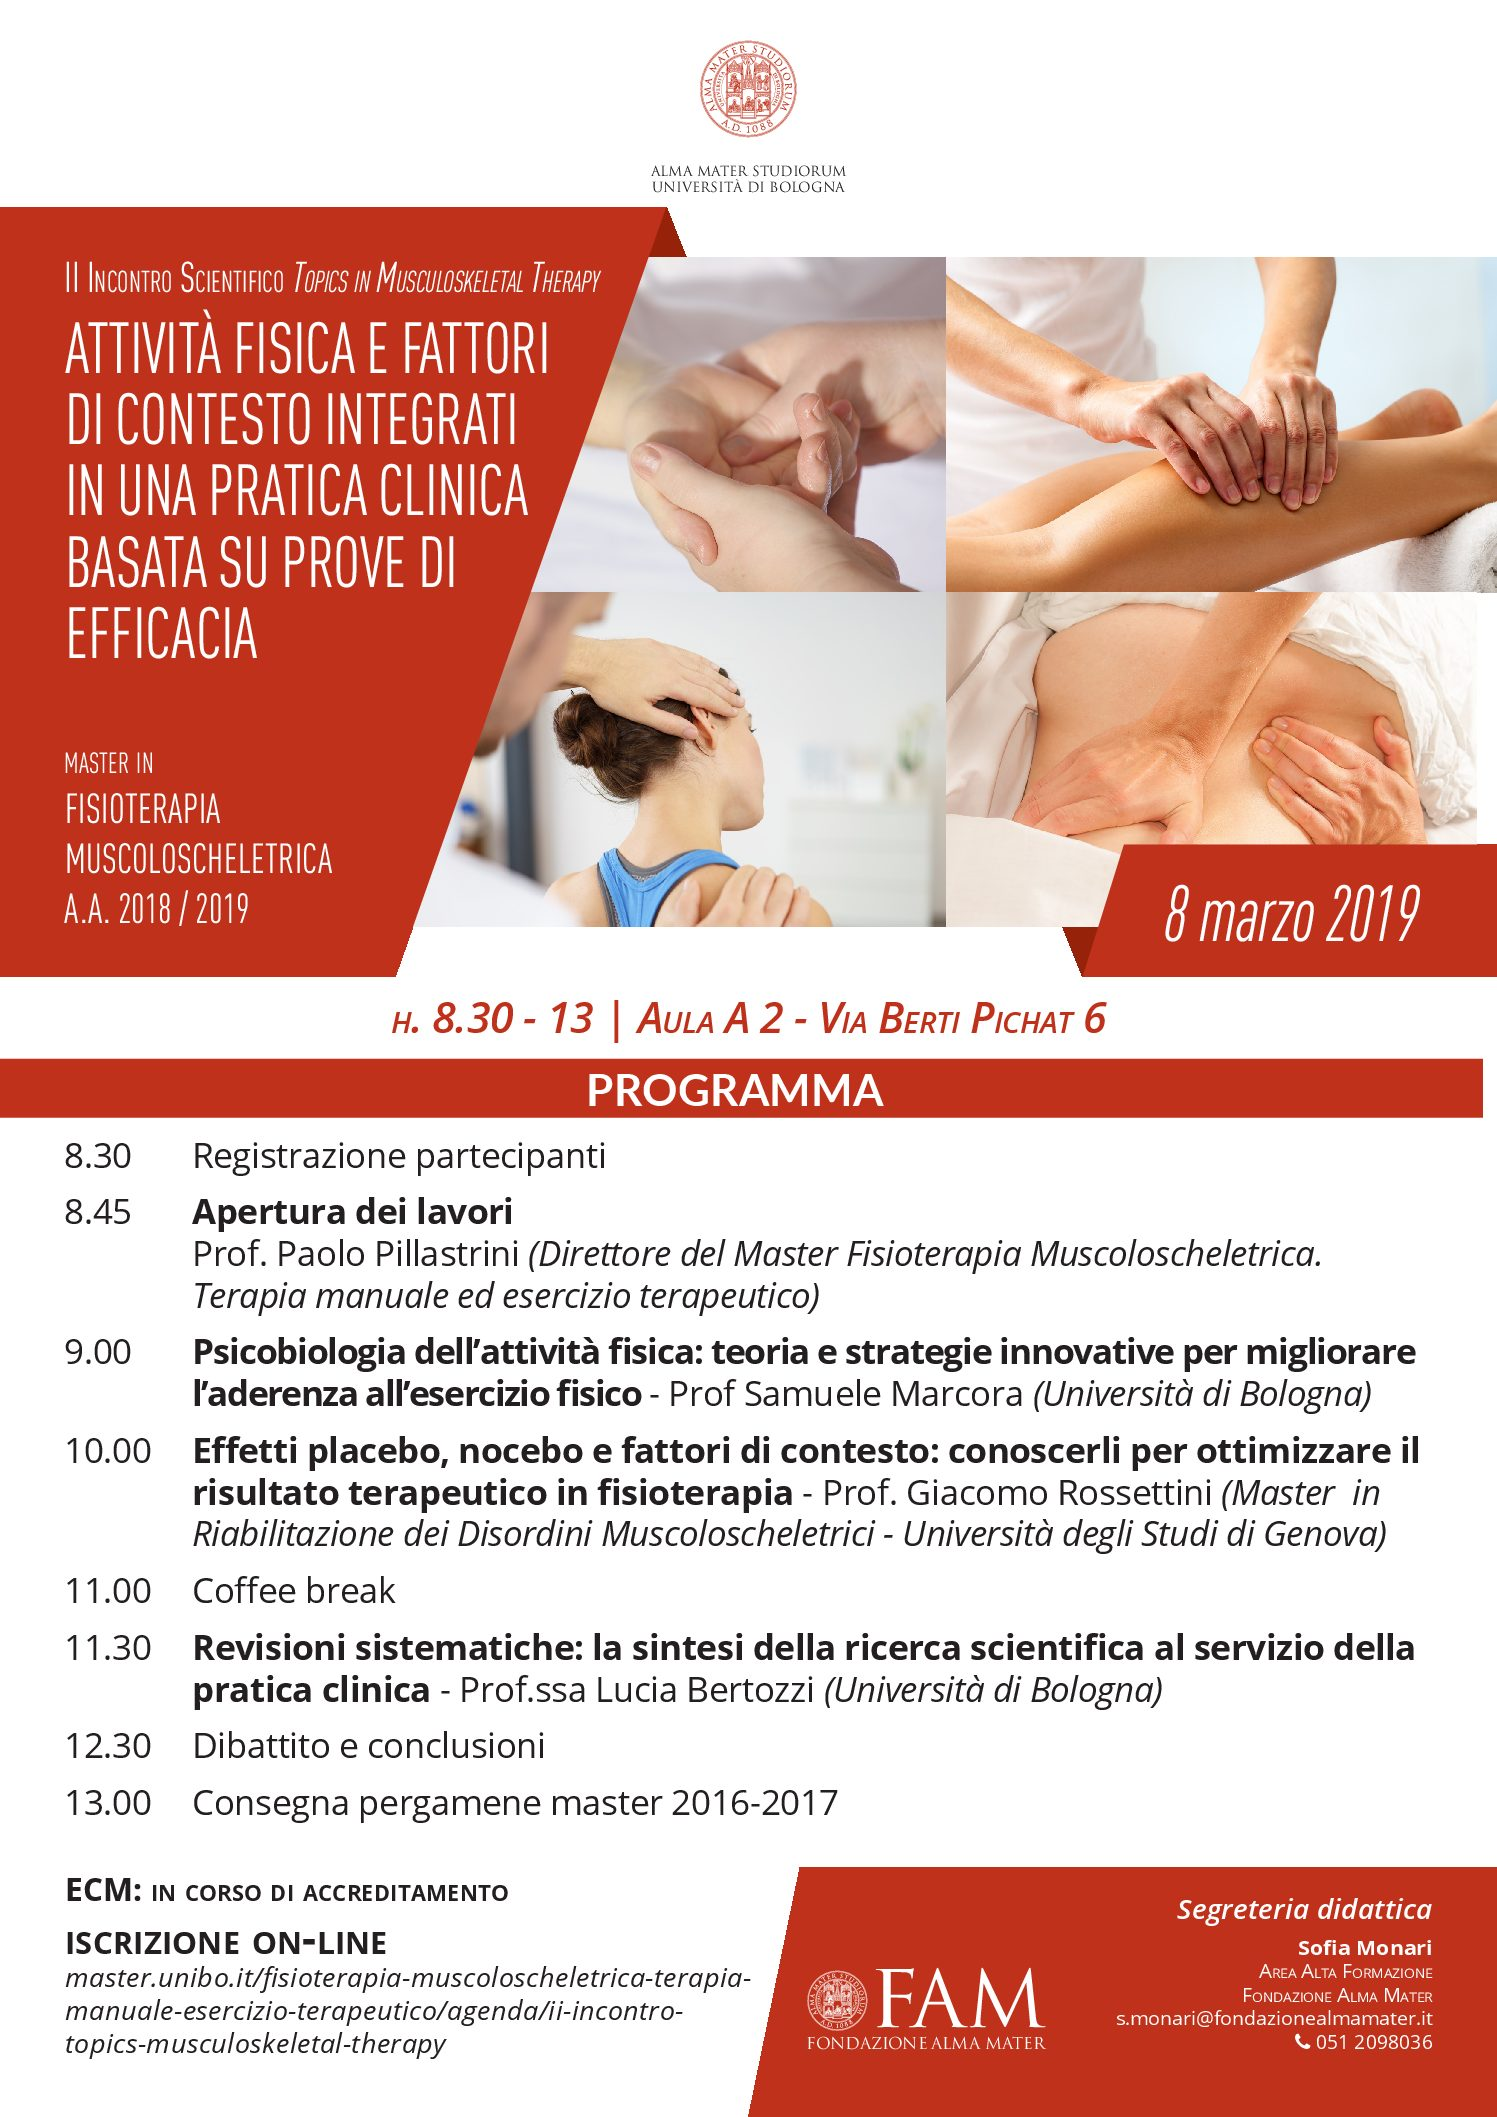 II Incontro Scientifico Topics in Musculoskeletal Therapy